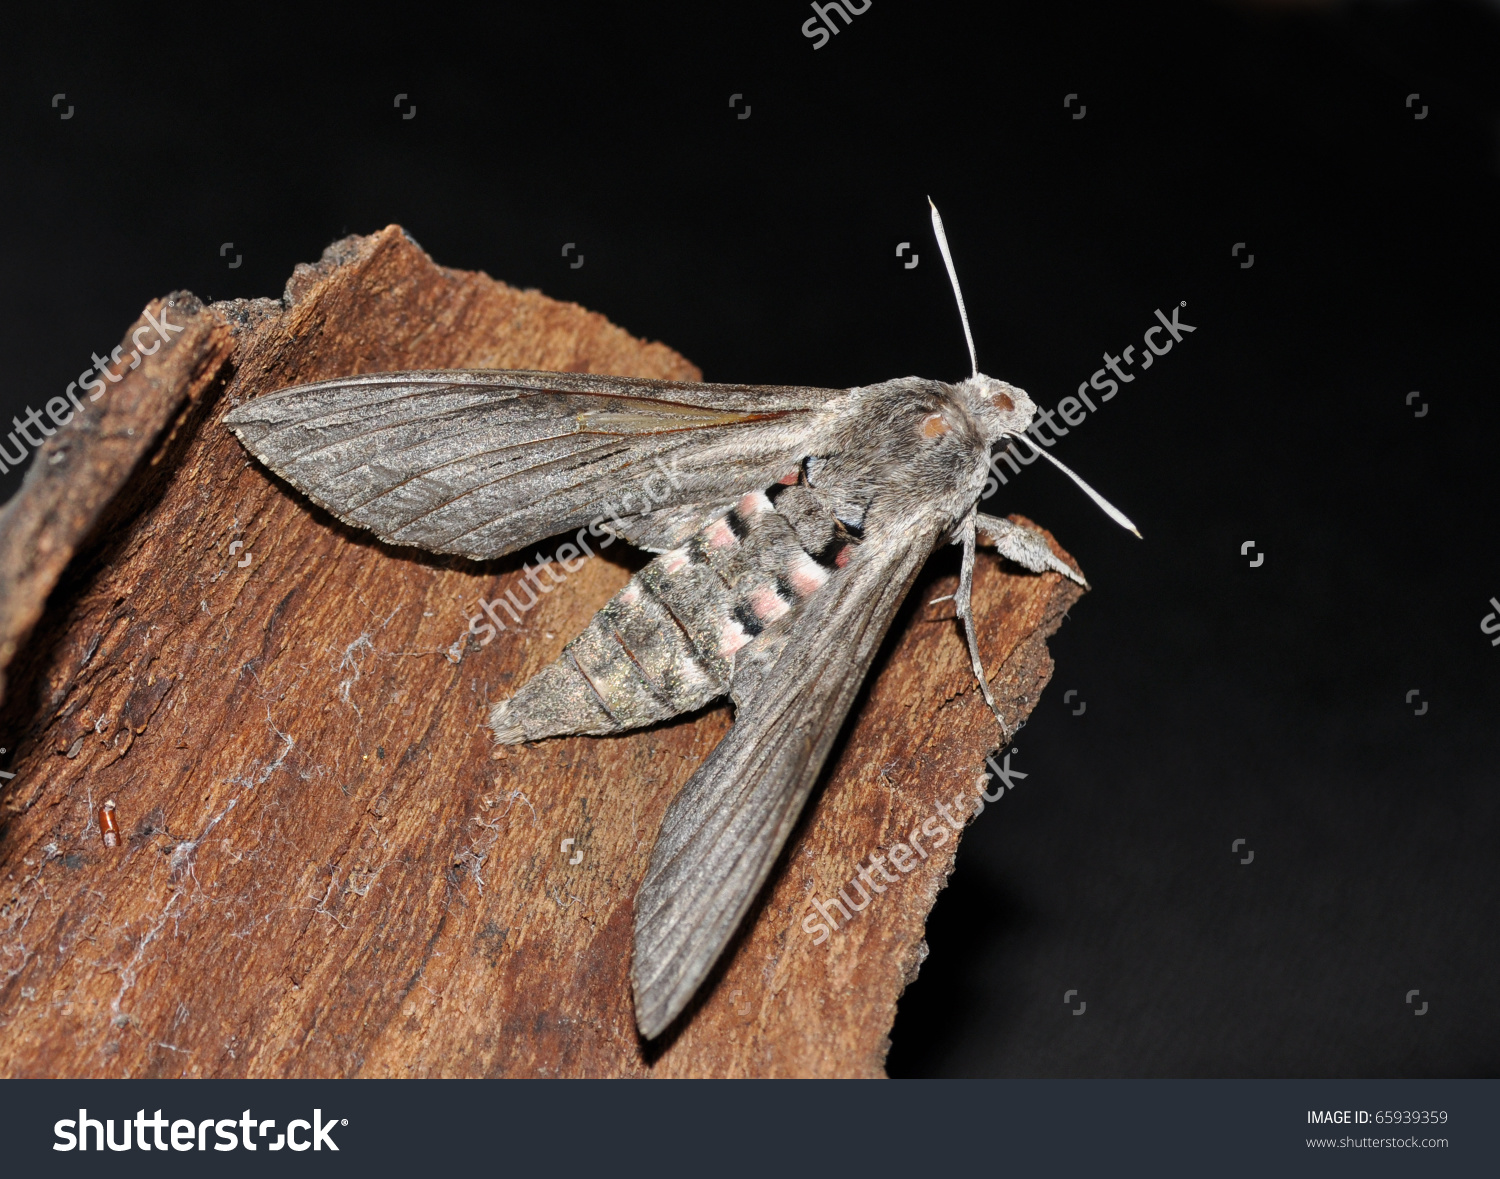 Big Hawkmoth Sphinx Convolvuli Agrius Convolvuli Stock Photo.